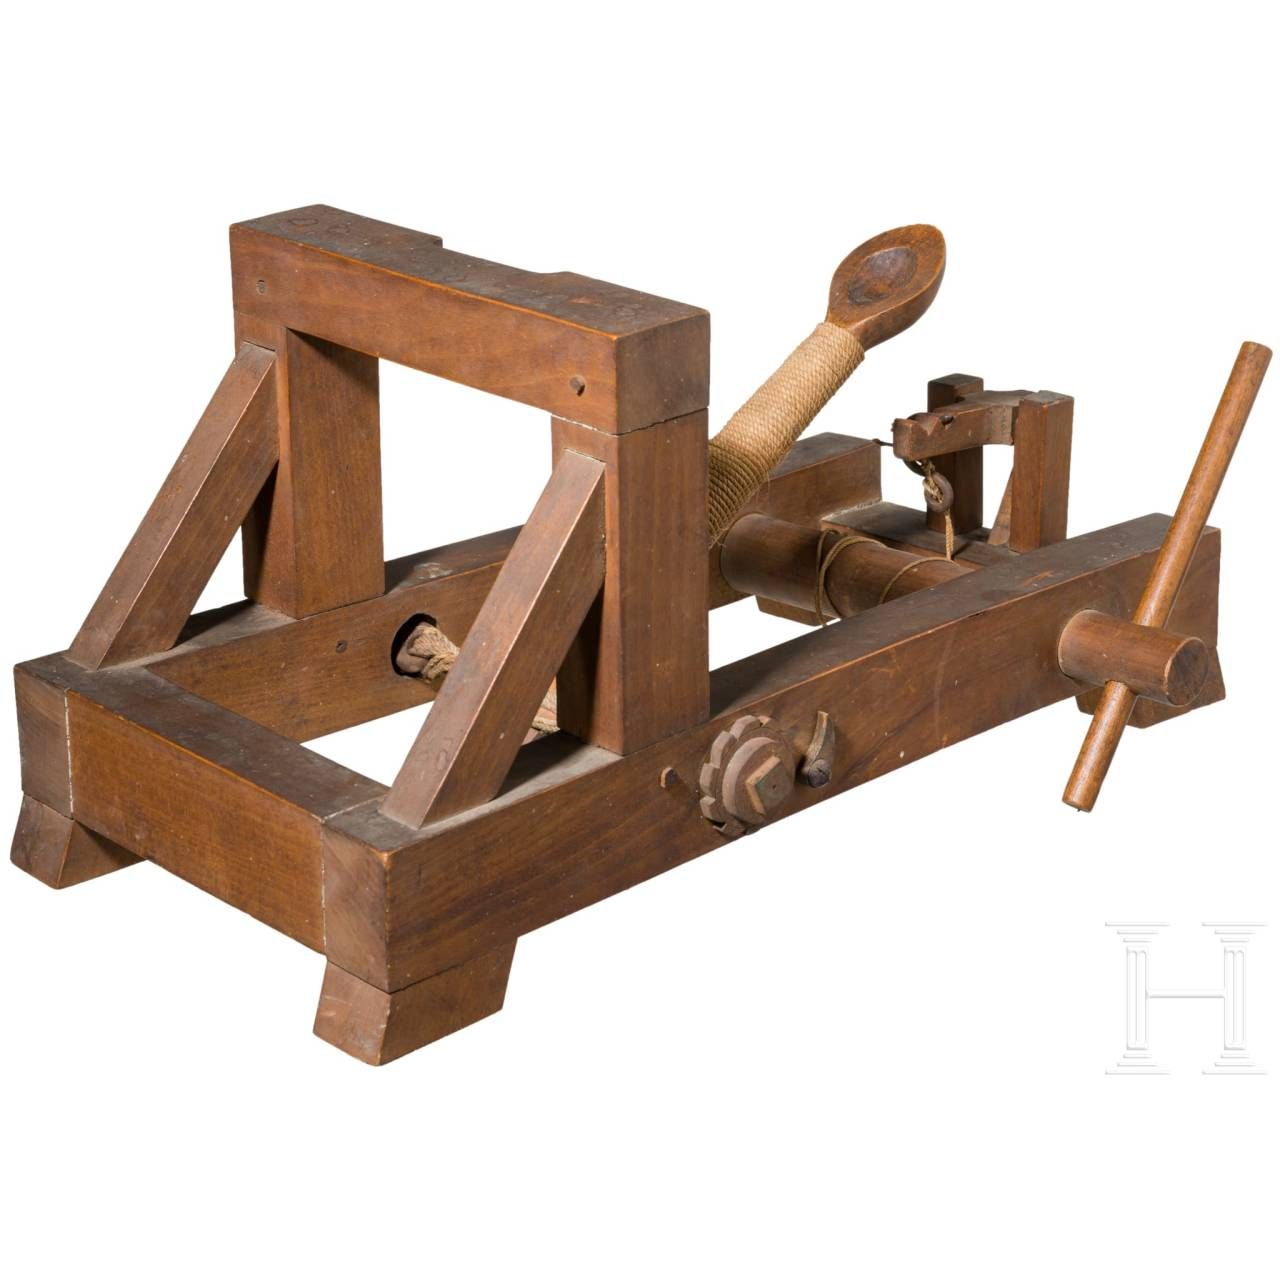 A detailed model of a catapult, circa 1900